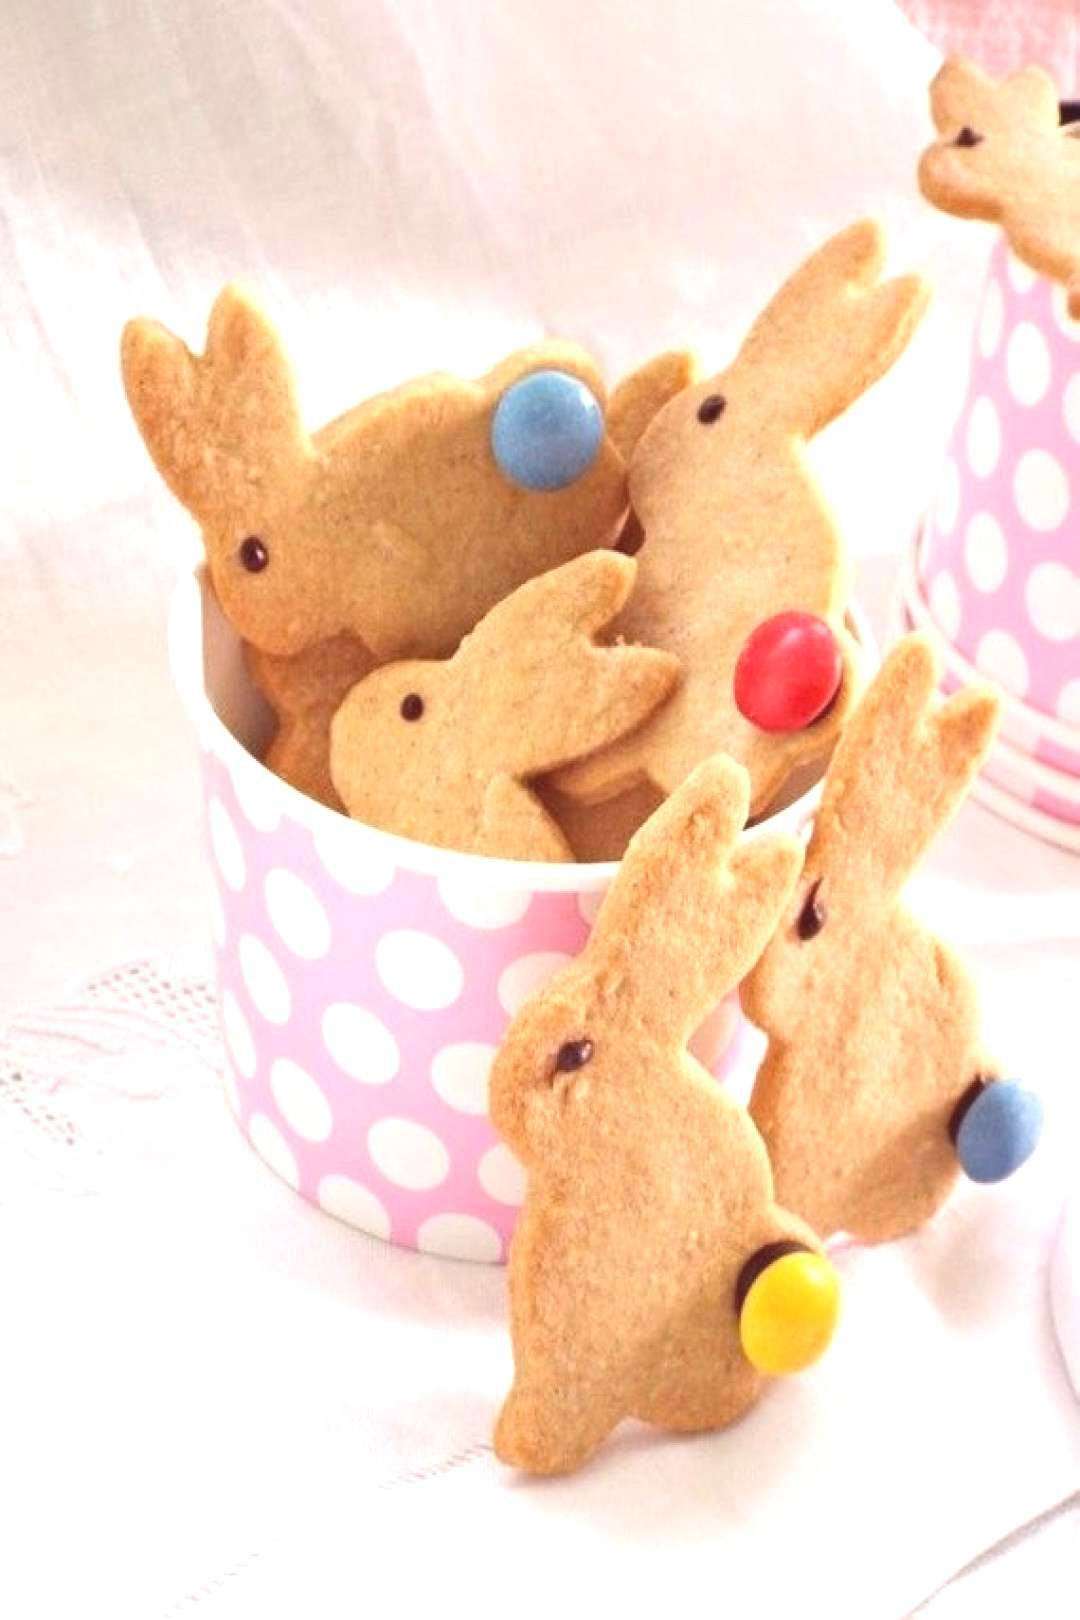 Baking Easter bunnies: Recipes for shortcrust pastry, yeast dough and sponge bunnies and over 70 pi